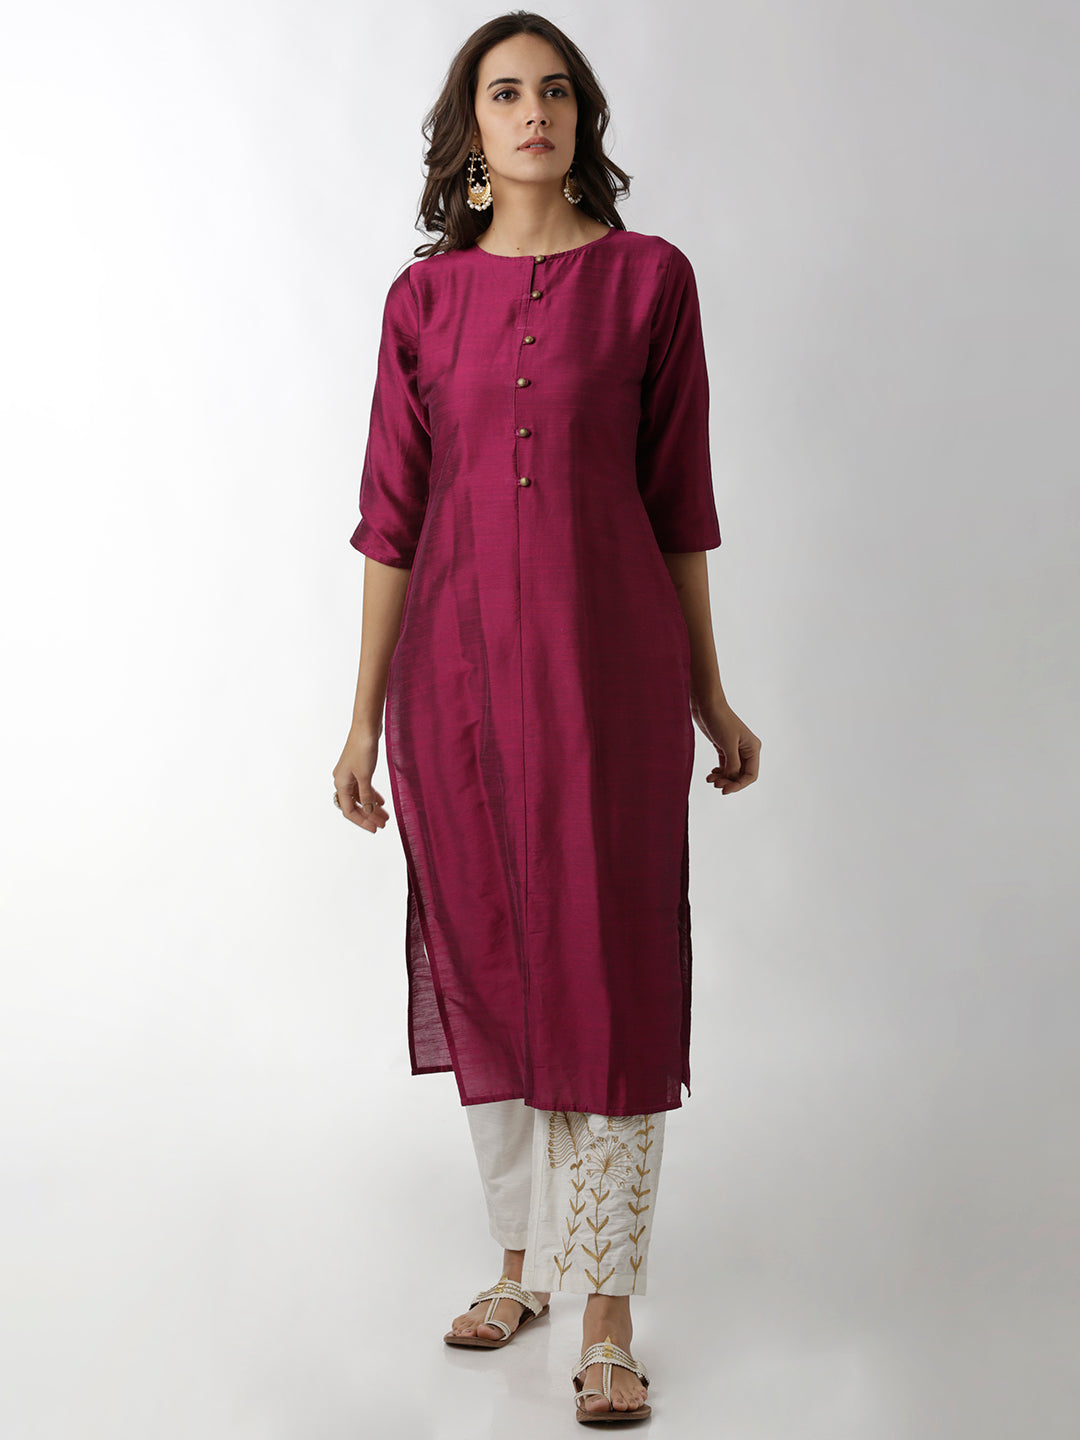 Breya Round Neck Plain Burgundy Straight Kurta